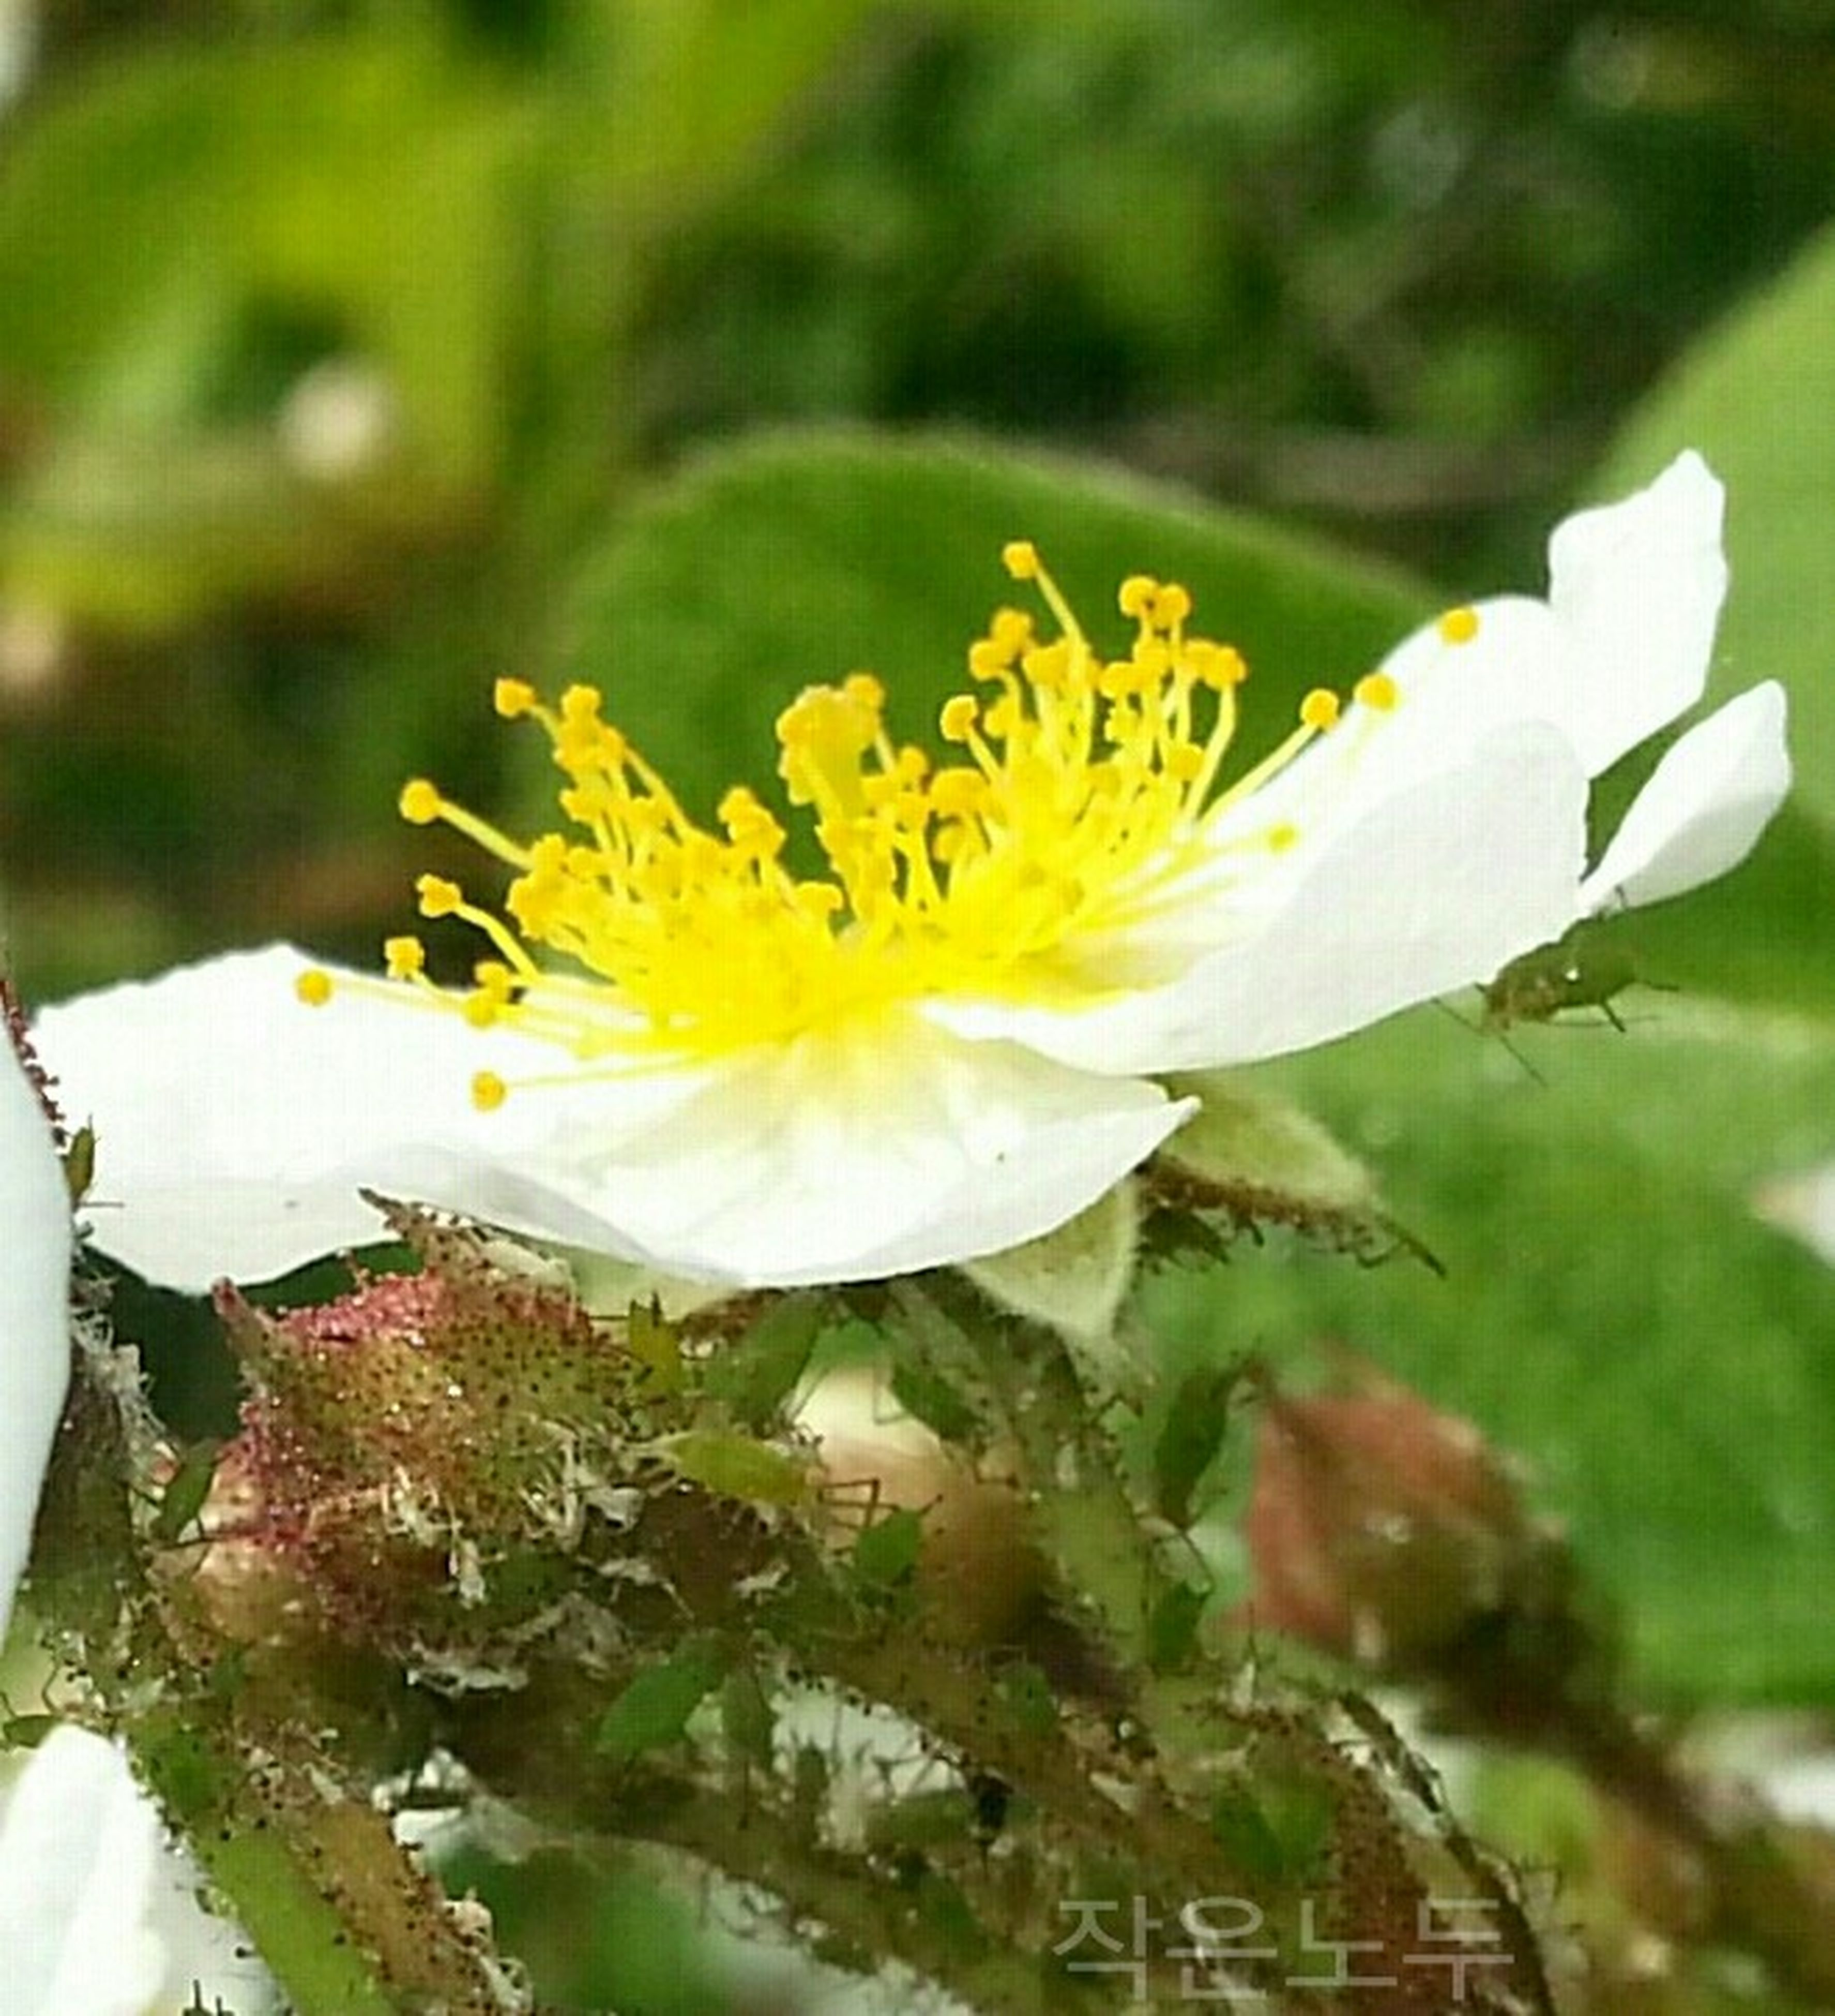 flower, petal, freshness, flower head, fragility, yellow, growth, close-up, beauty in nature, white color, plant, blooming, focus on foreground, nature, single flower, in bloom, pollen, blossom, stem, outdoors